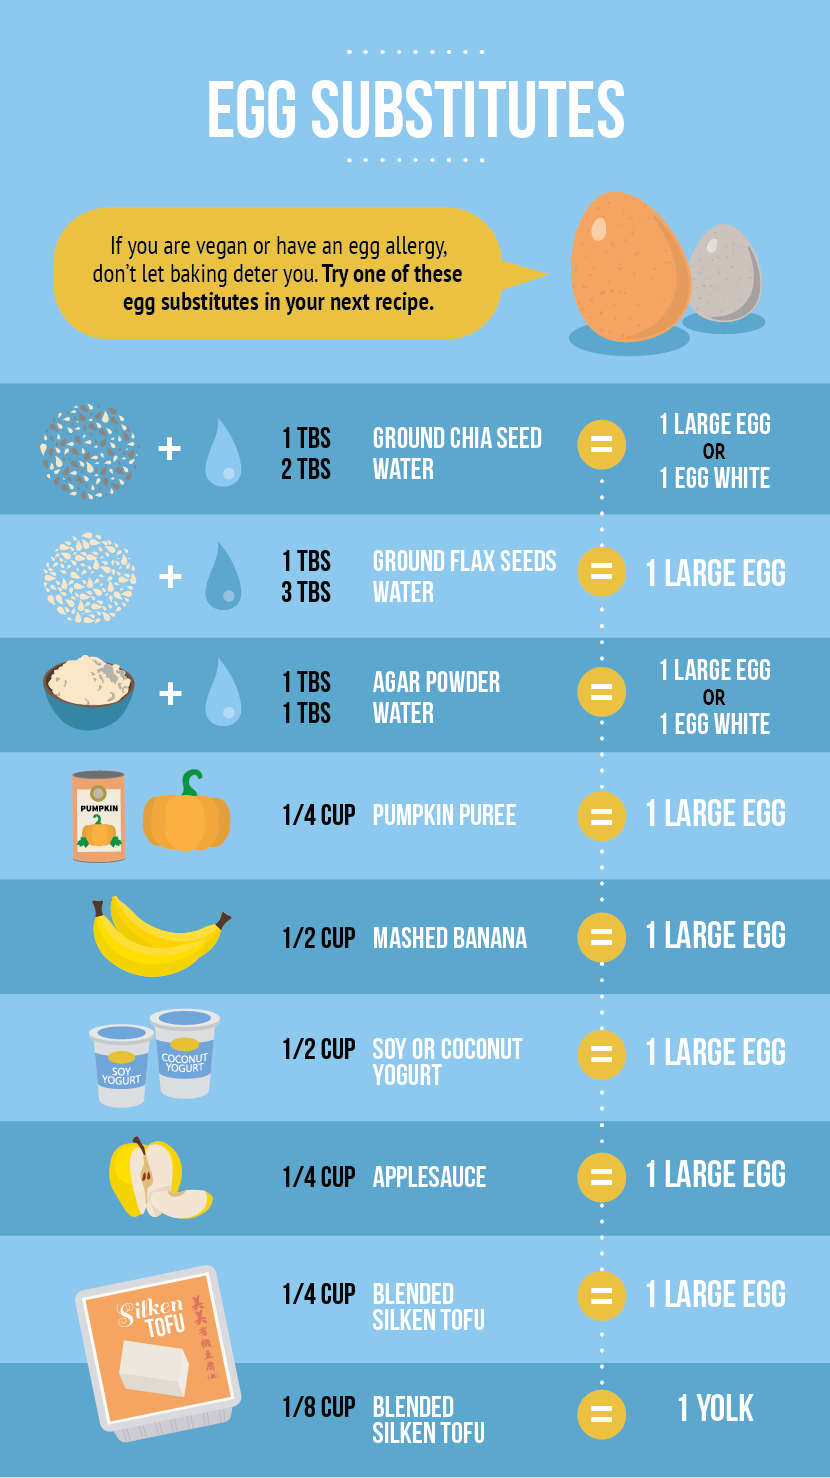 Egg Substitutes - All About Baking with Eggs